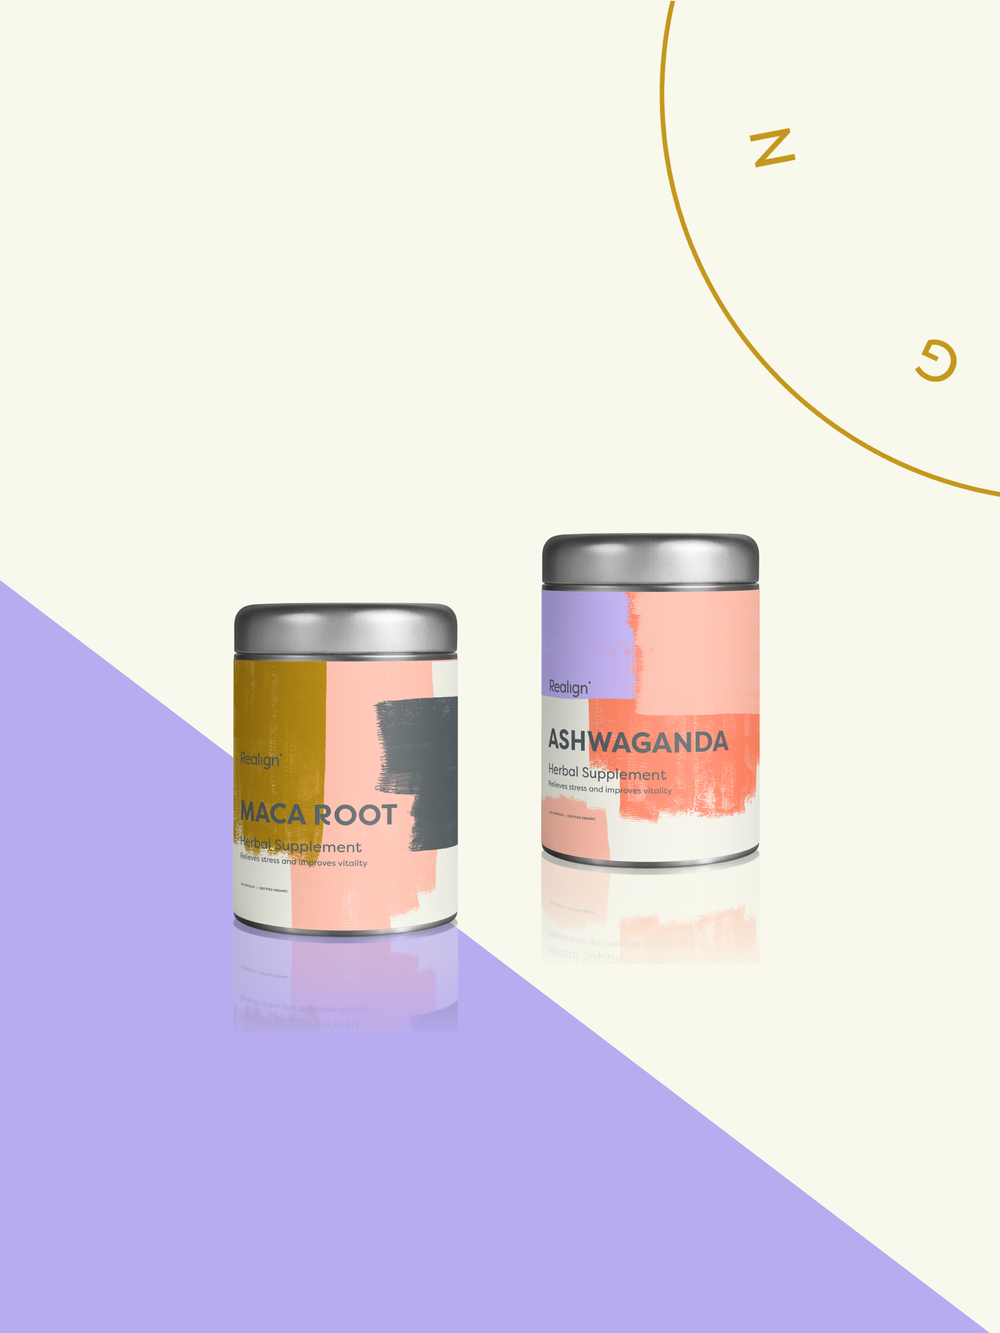 Realign Packaging Design | Trout + Taylor www.troutandtaylor.com